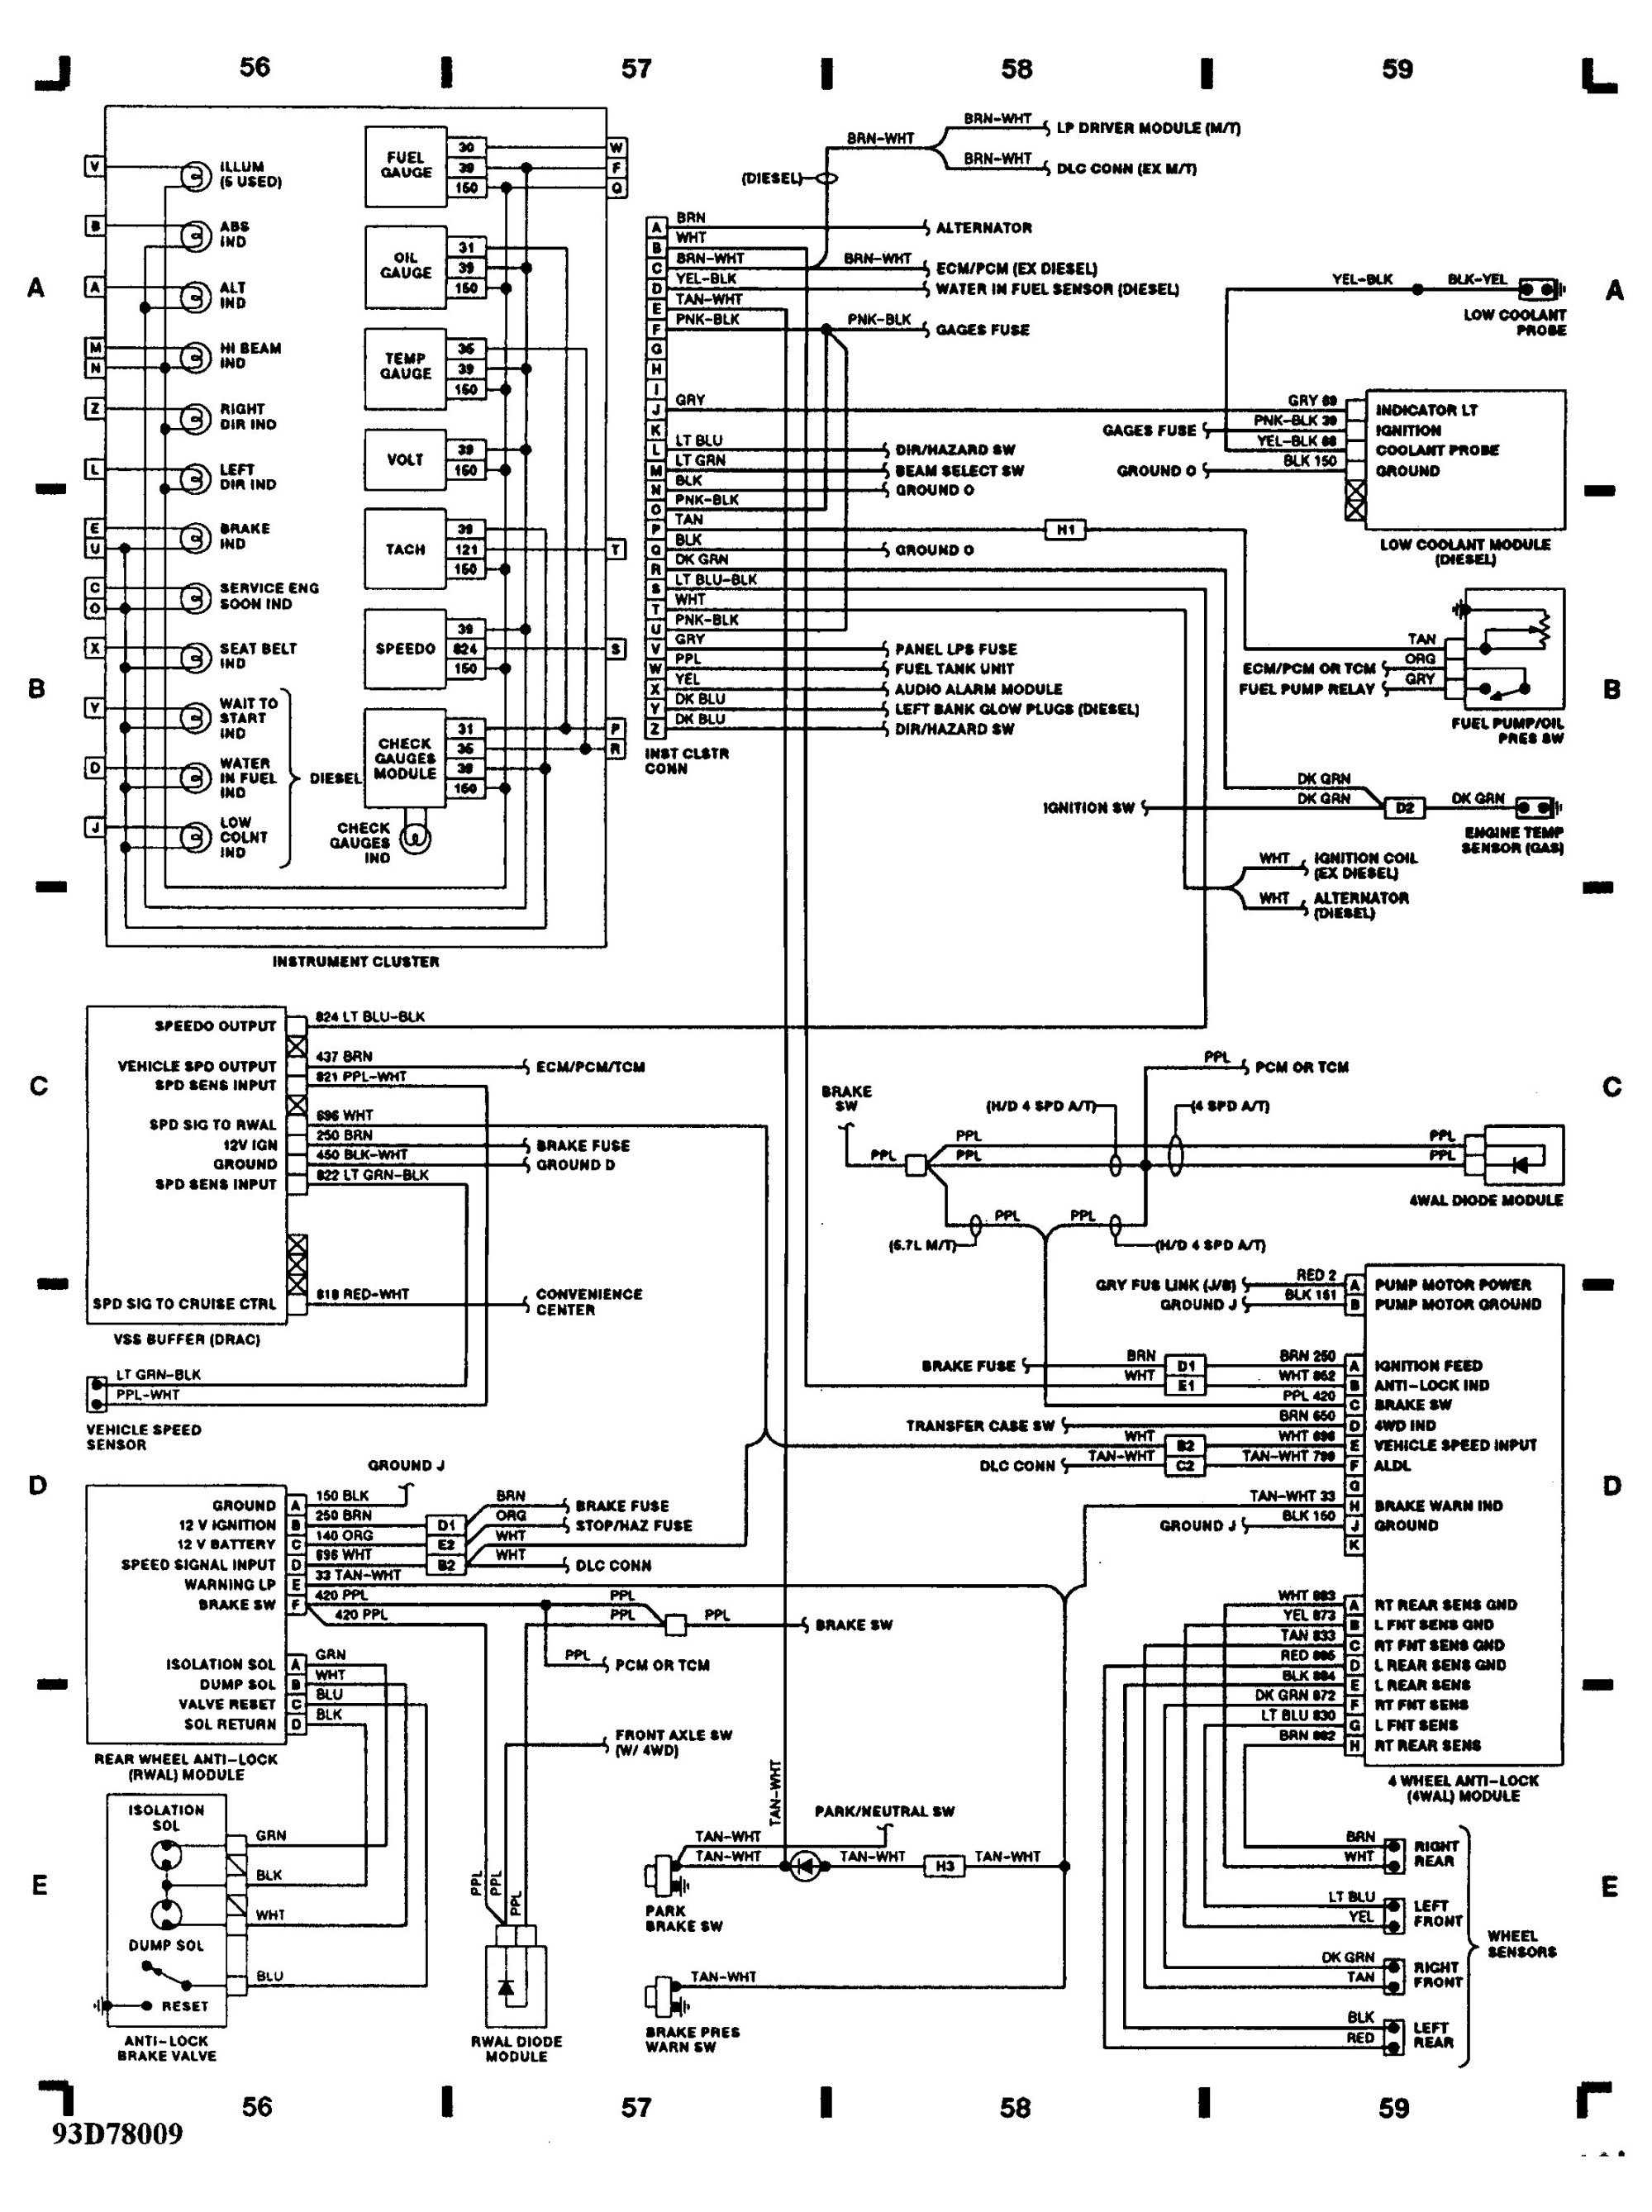 hight resolution of home 1997 chevy s10 pickup diagram for spark plug and coil wire 1997 chevy blazer engine diagram 1997 chevy s10 engine diagram